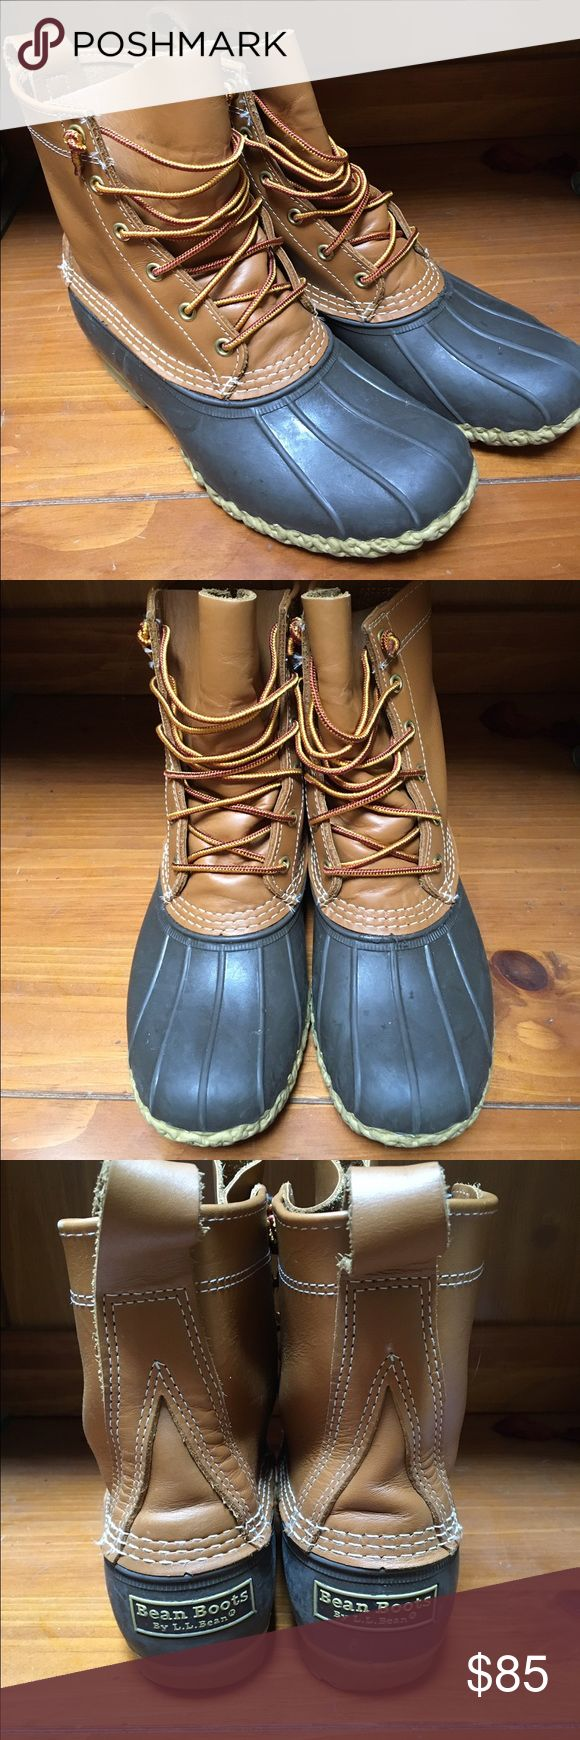 L.L. Bean boots Nearly new. Worn half a dozen times and in fantastic condition L.L. Bean Shoes Winter & Rain Boots